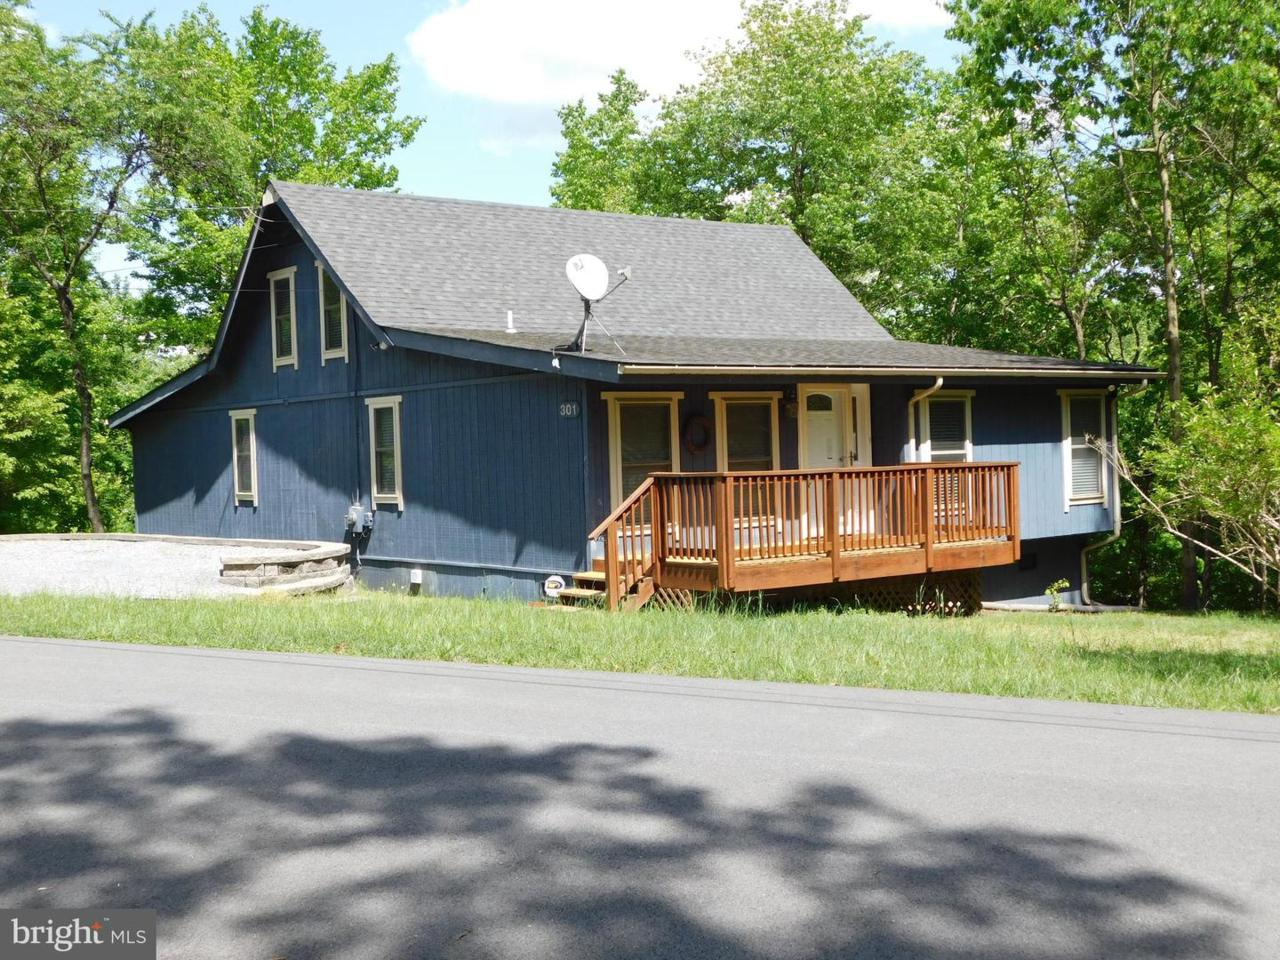 301 Animikean Ridge - Photo 1